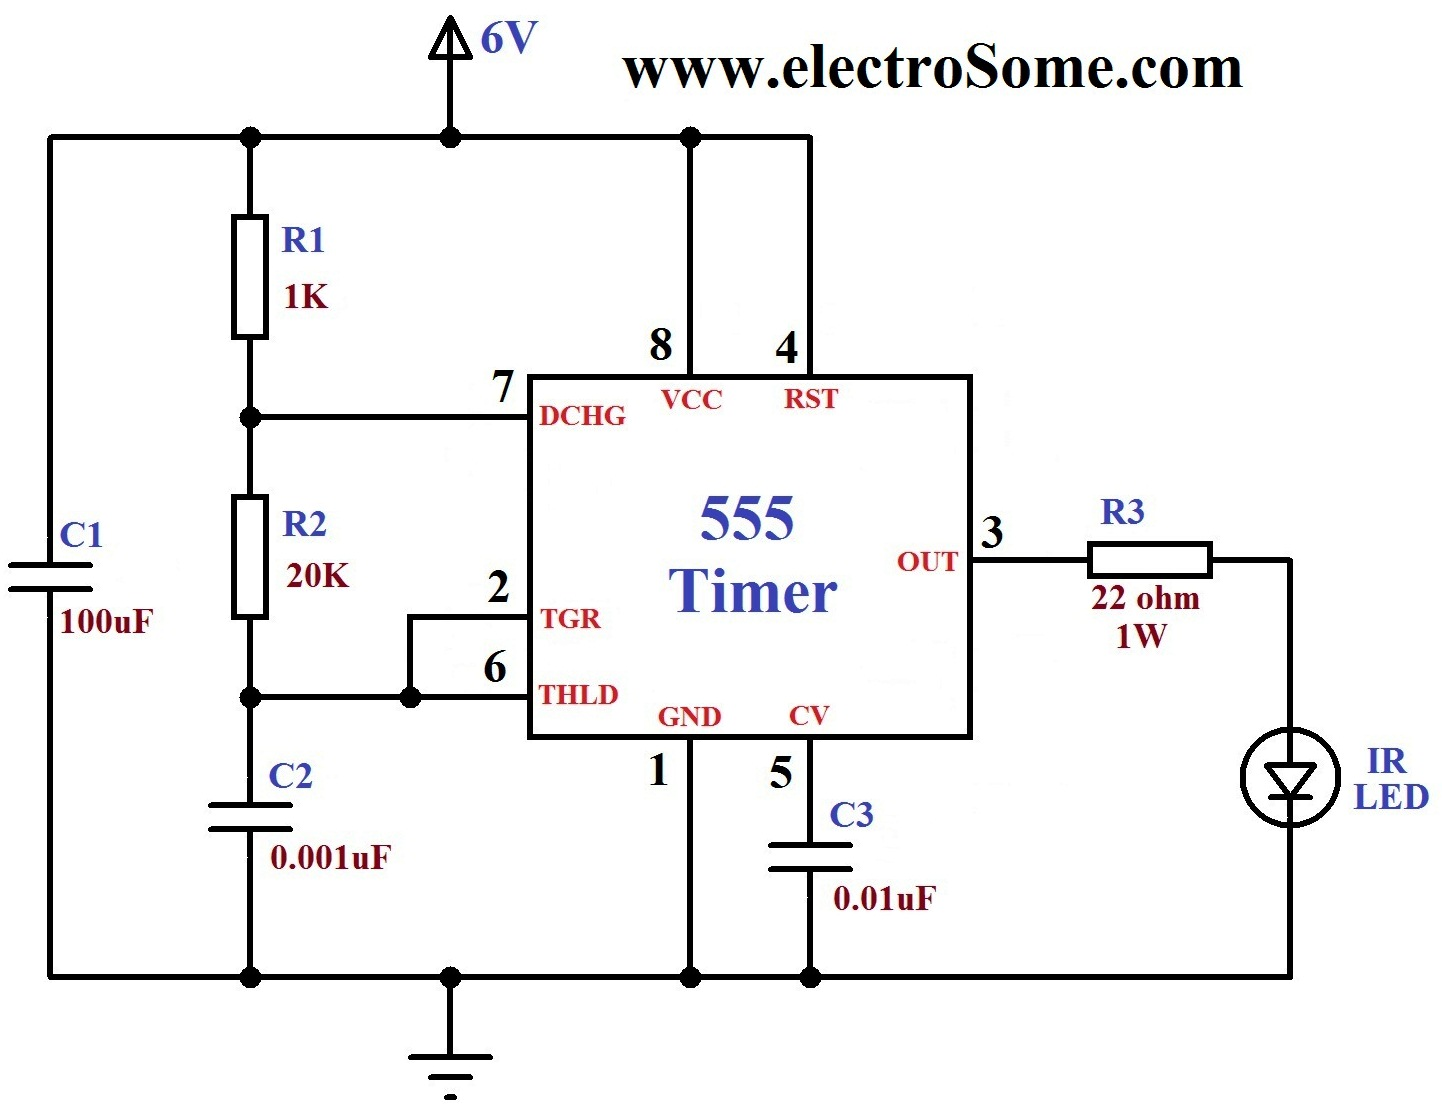 Wiring Diagram Receiver And Emitter In A Plc Great Installation Of 555 Timer Diagrams Ir Transmitter Using Led Tsop1738 Rh Electrosome Com